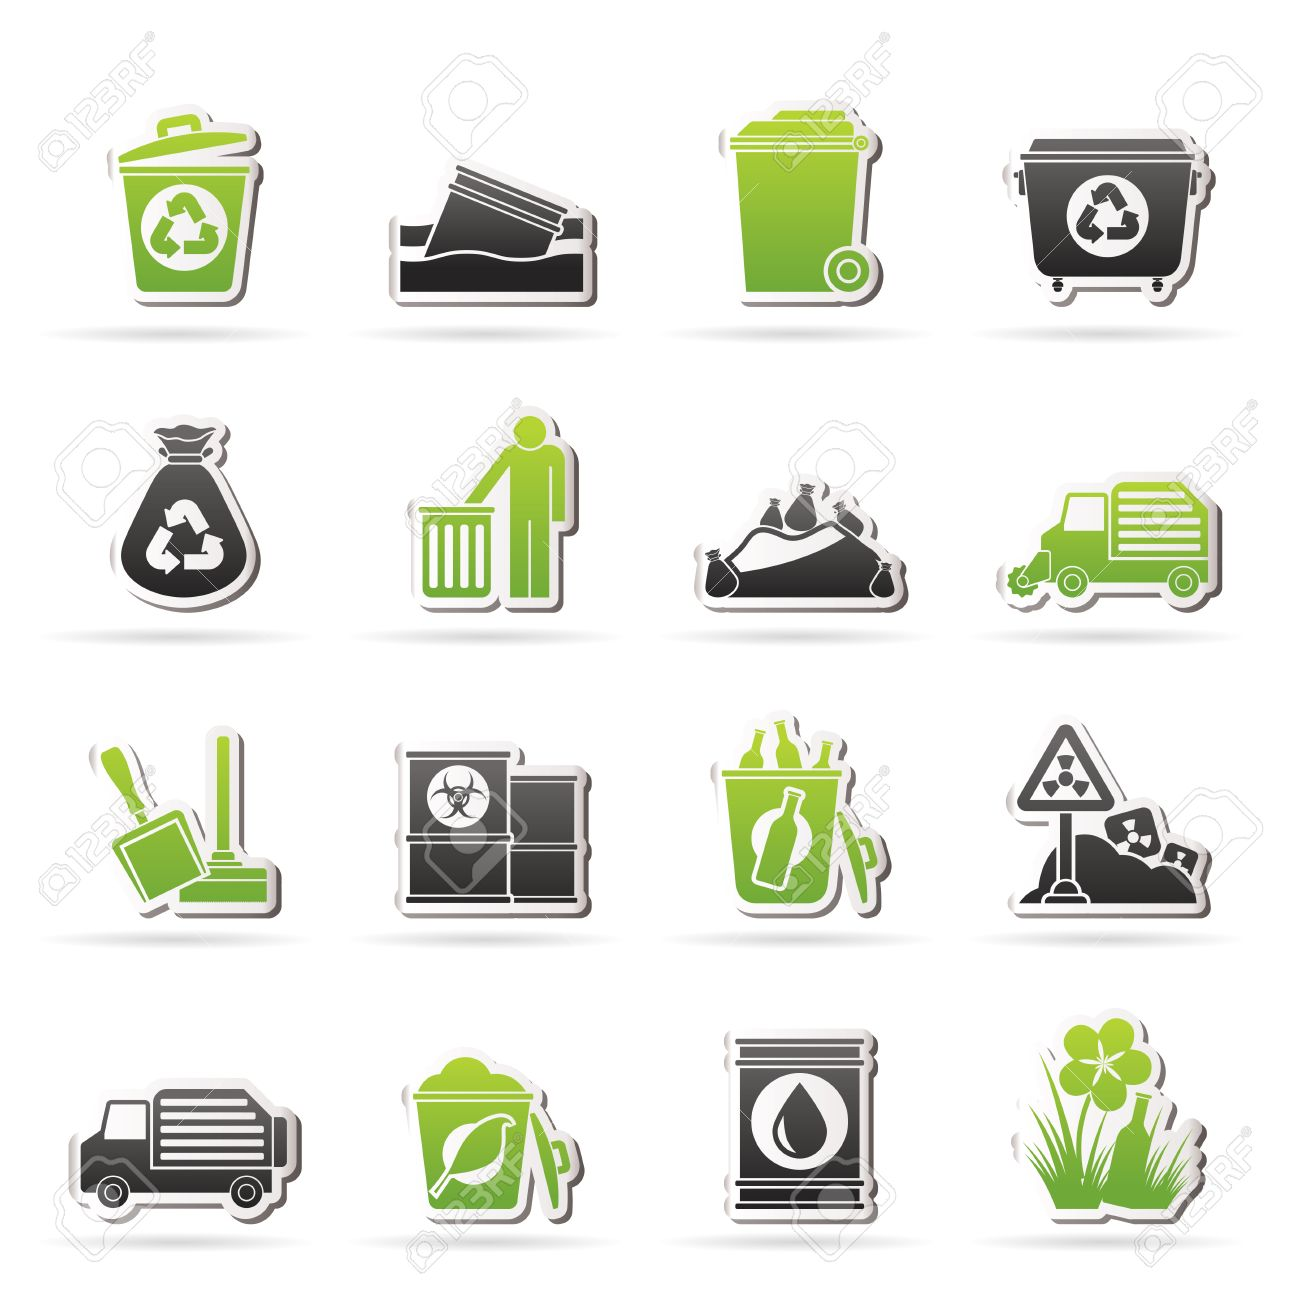 Garbage and rubbish icons - vector icon set Stock Vector - 25211120